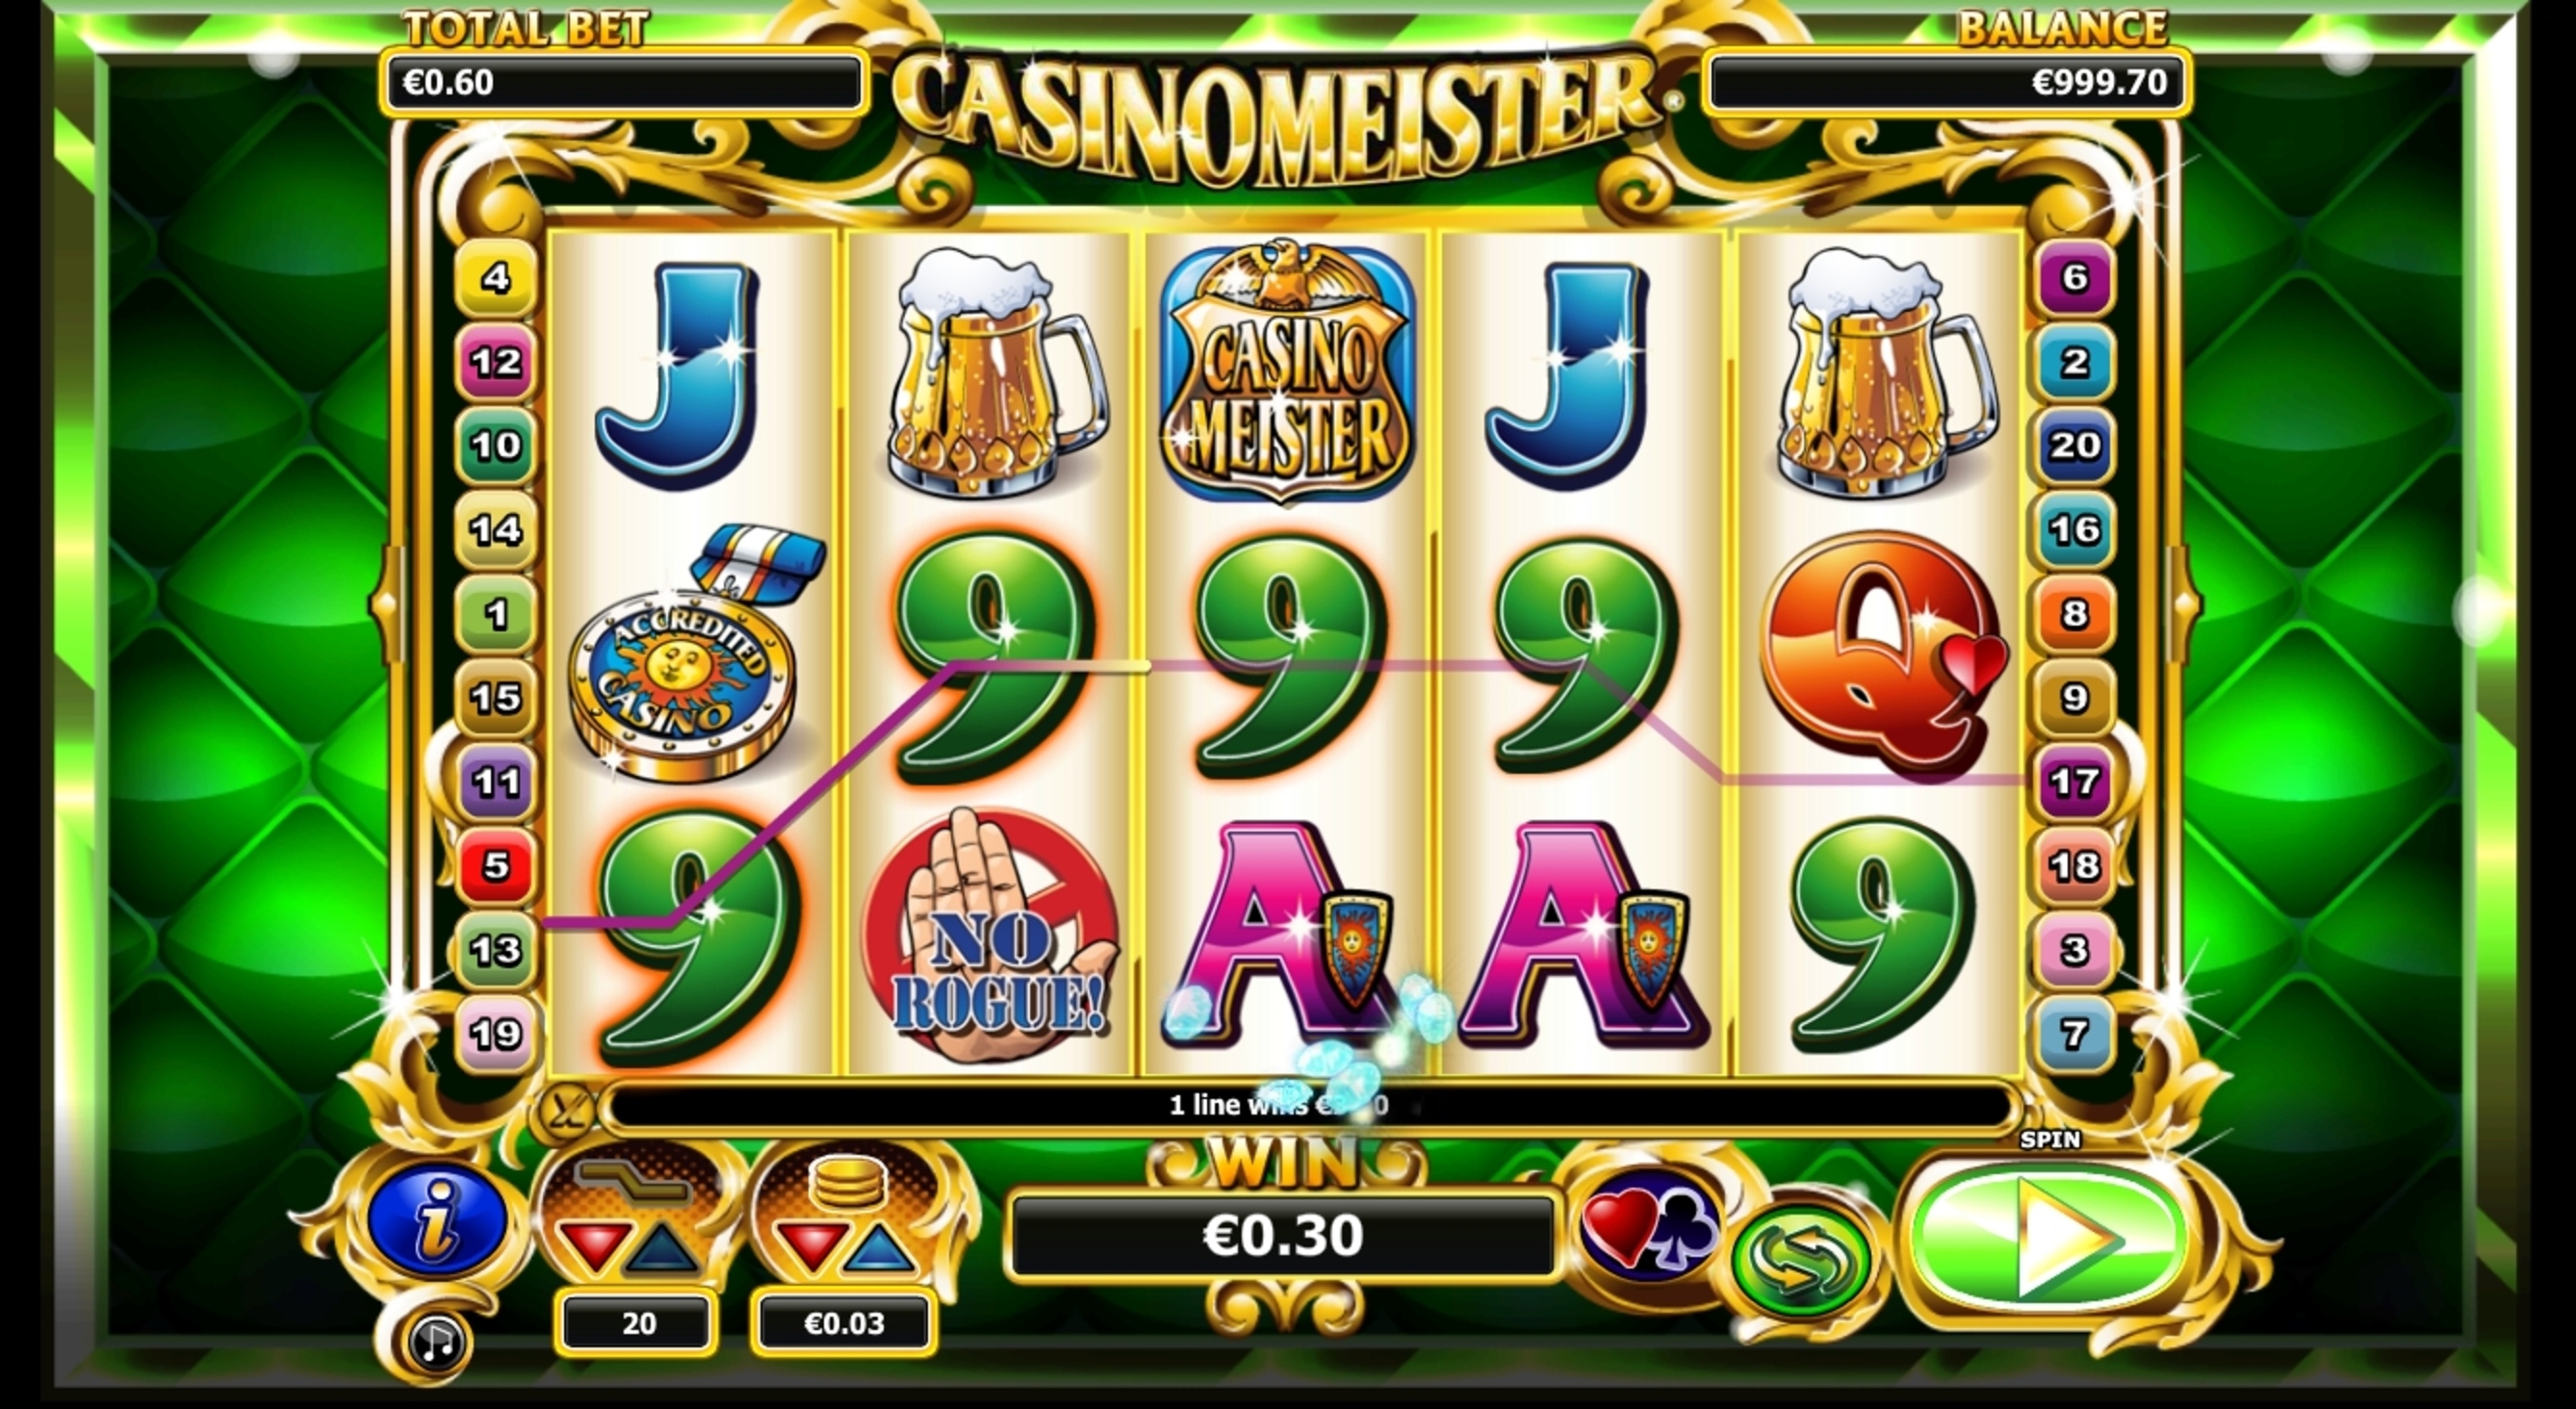 Win Money in Casinomeister Free Slot Game by NextGen Gaming